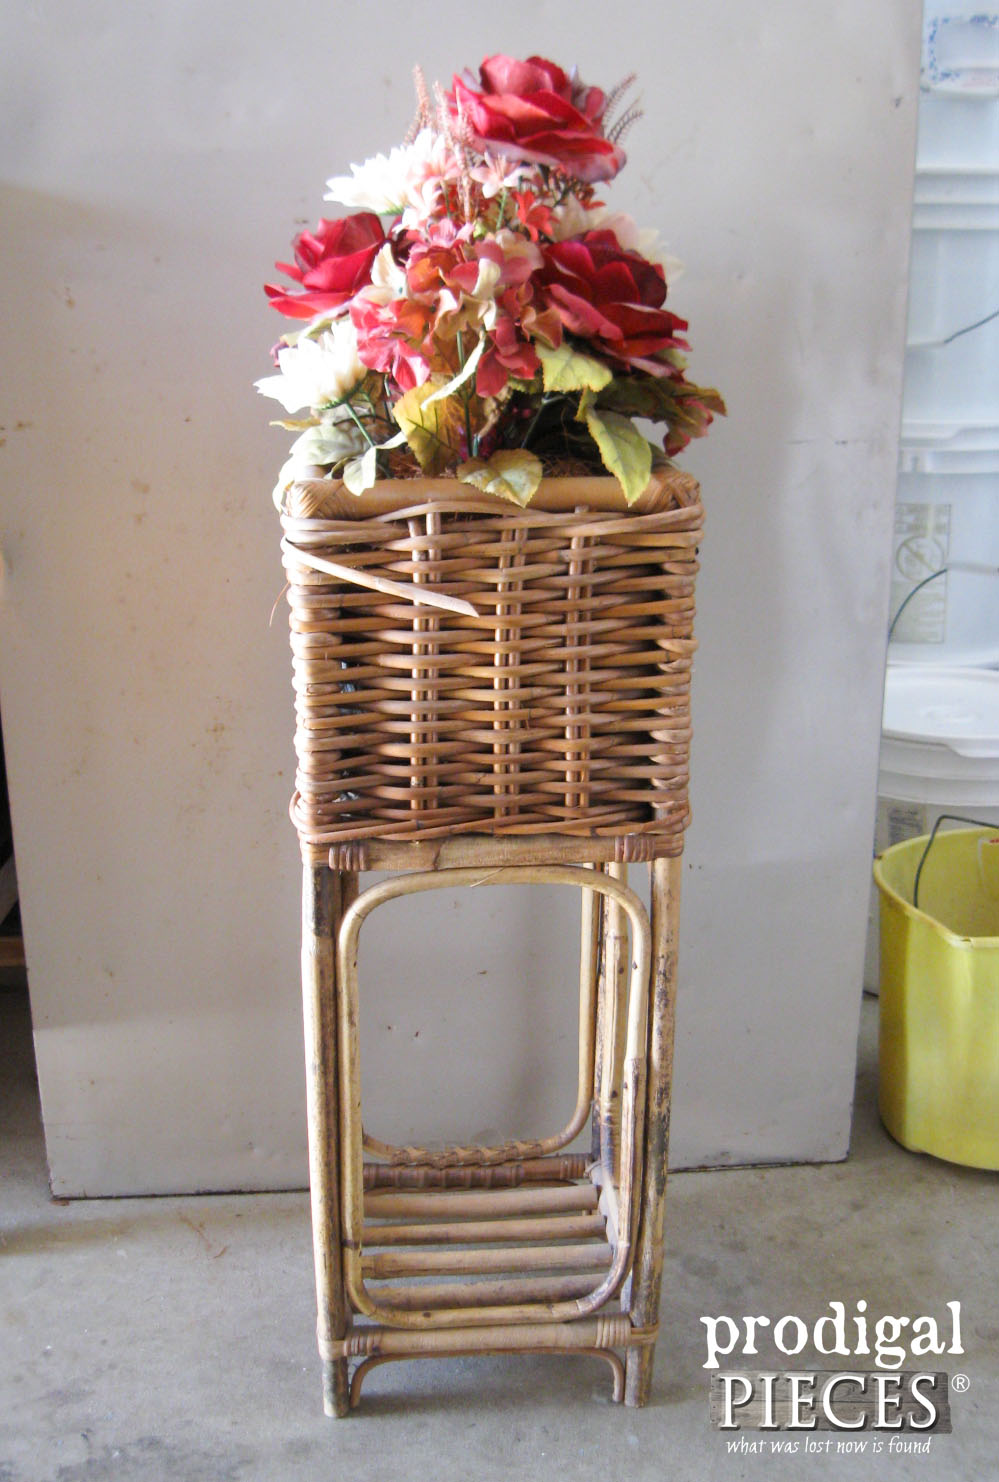 Thrifted Plant Stand Before Makeover by Prodigal Pieces | www.prodigalpieces.com